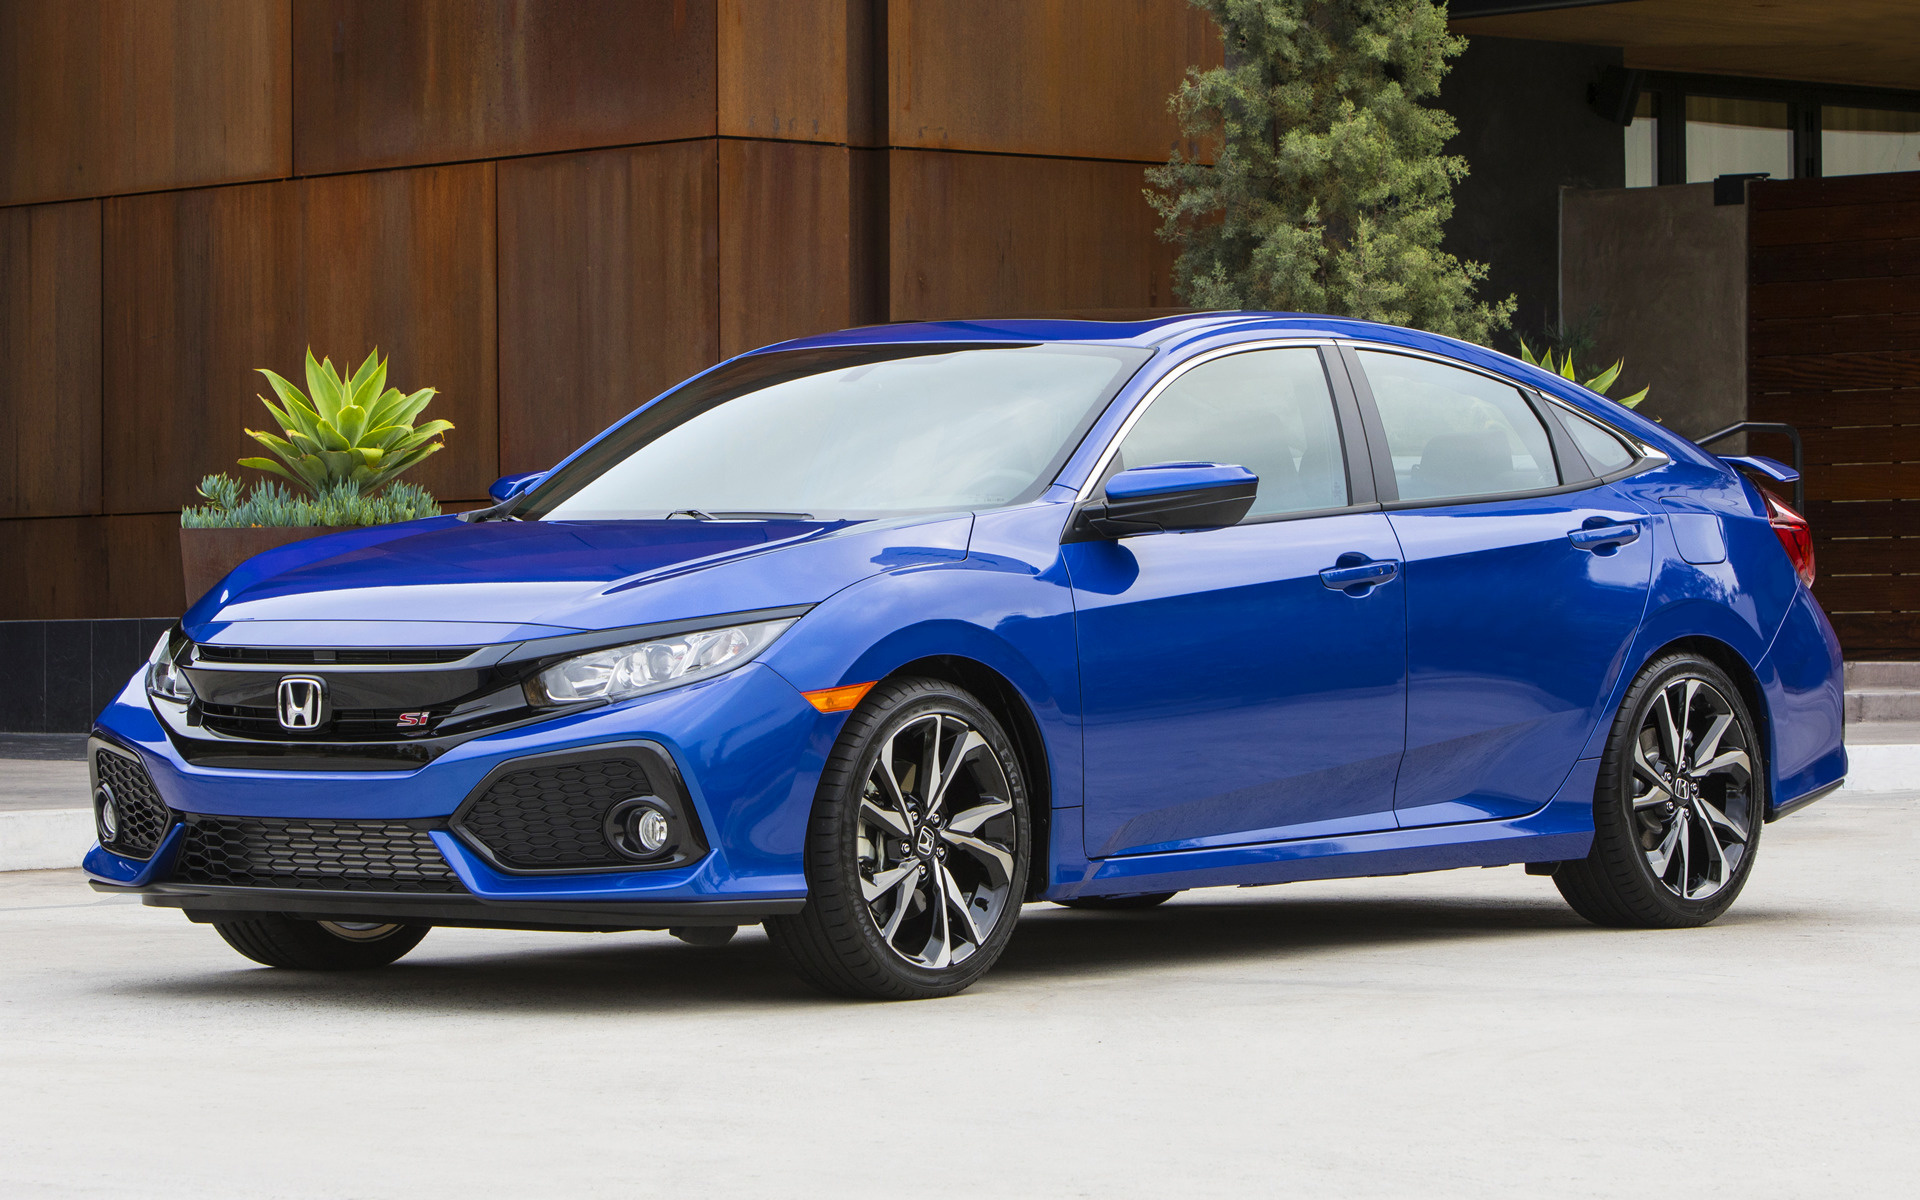 2017 Honda Civic Si Sedan US Wallpapers And HD Images